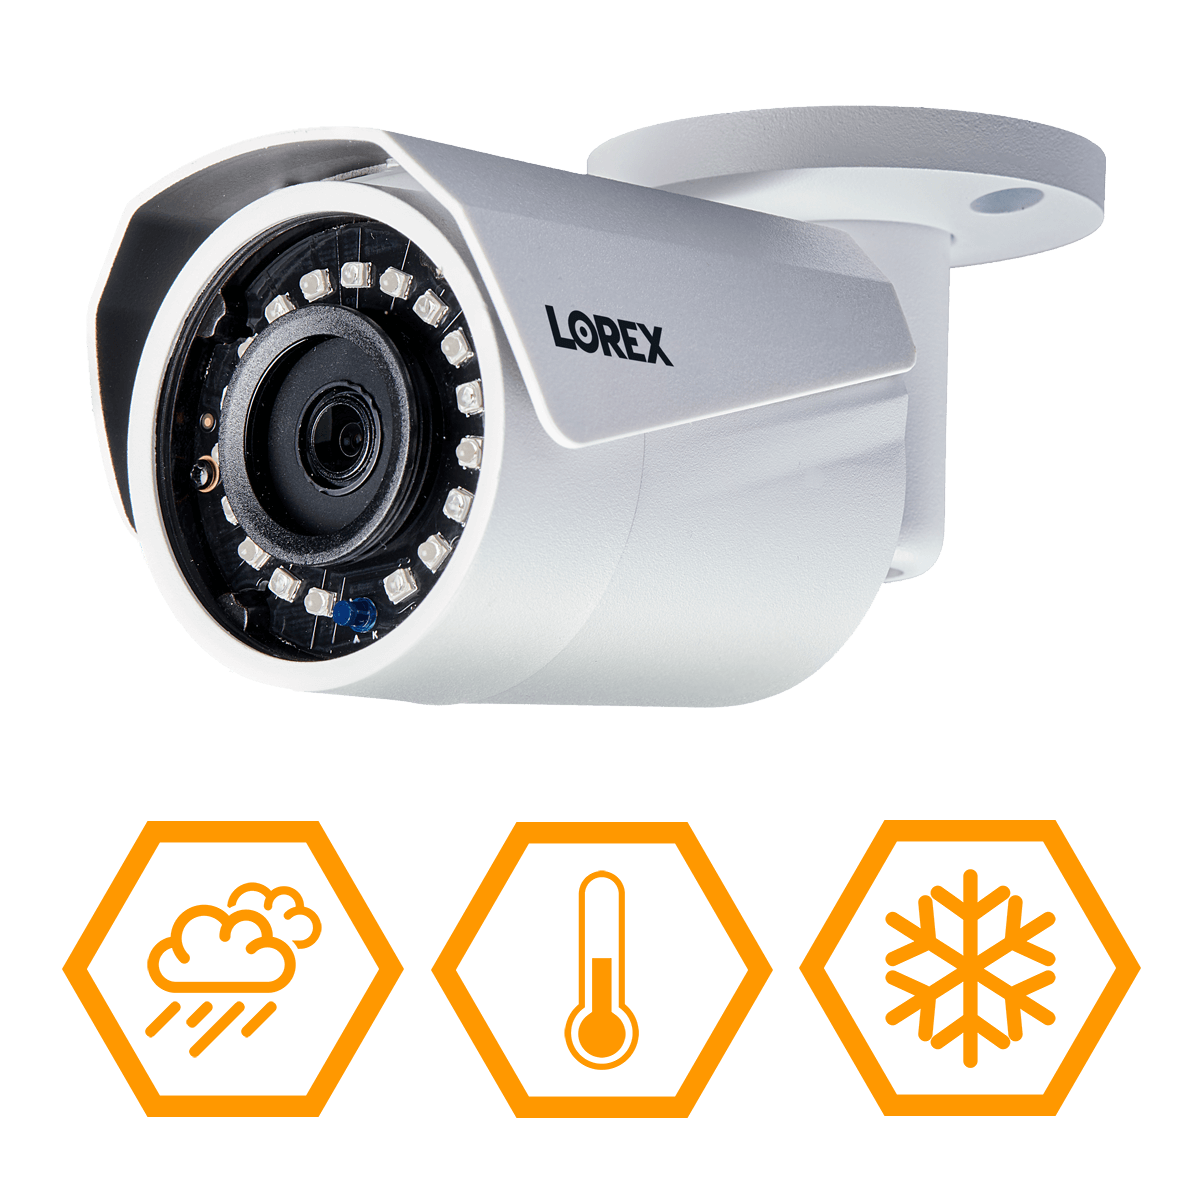 IP66 Weatherproof security cameras to protect your property all year long